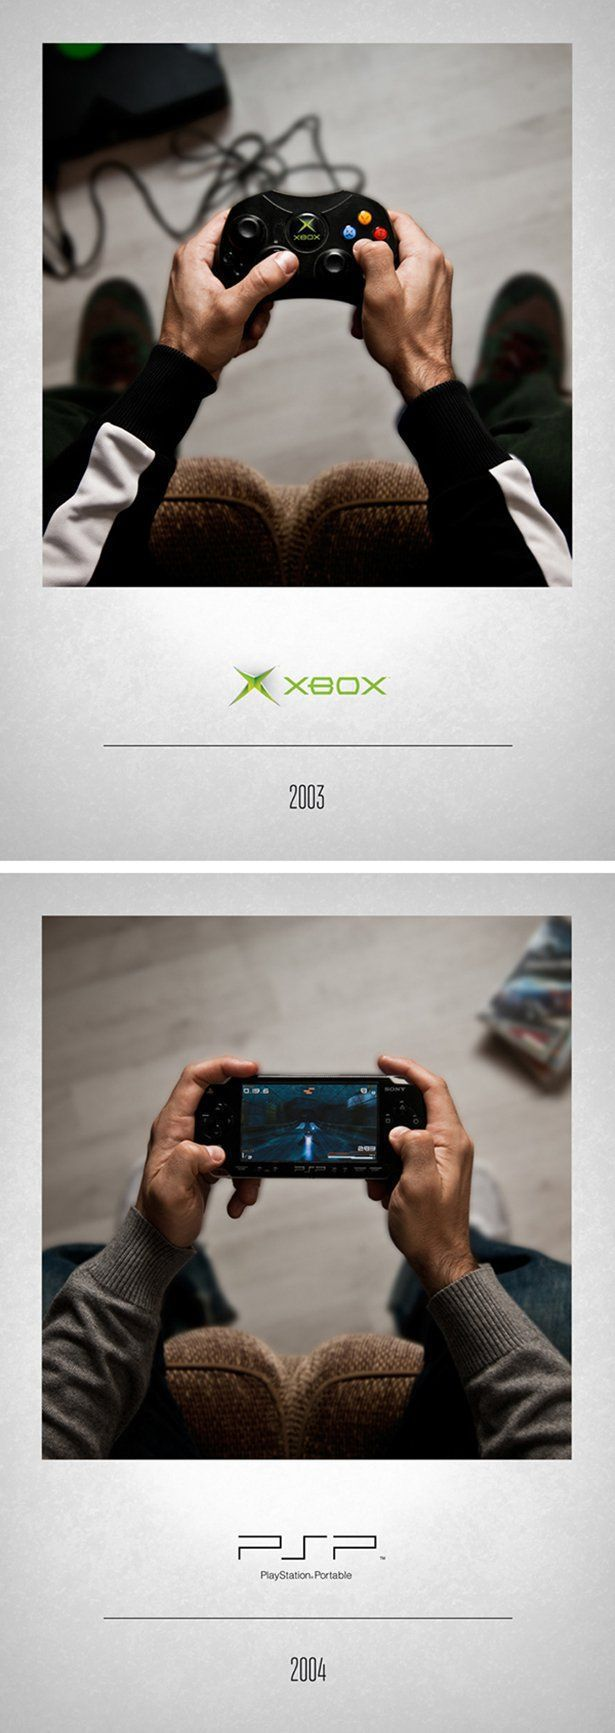 how_video_game_controllers_have_changed_over_the_years_640_high_13